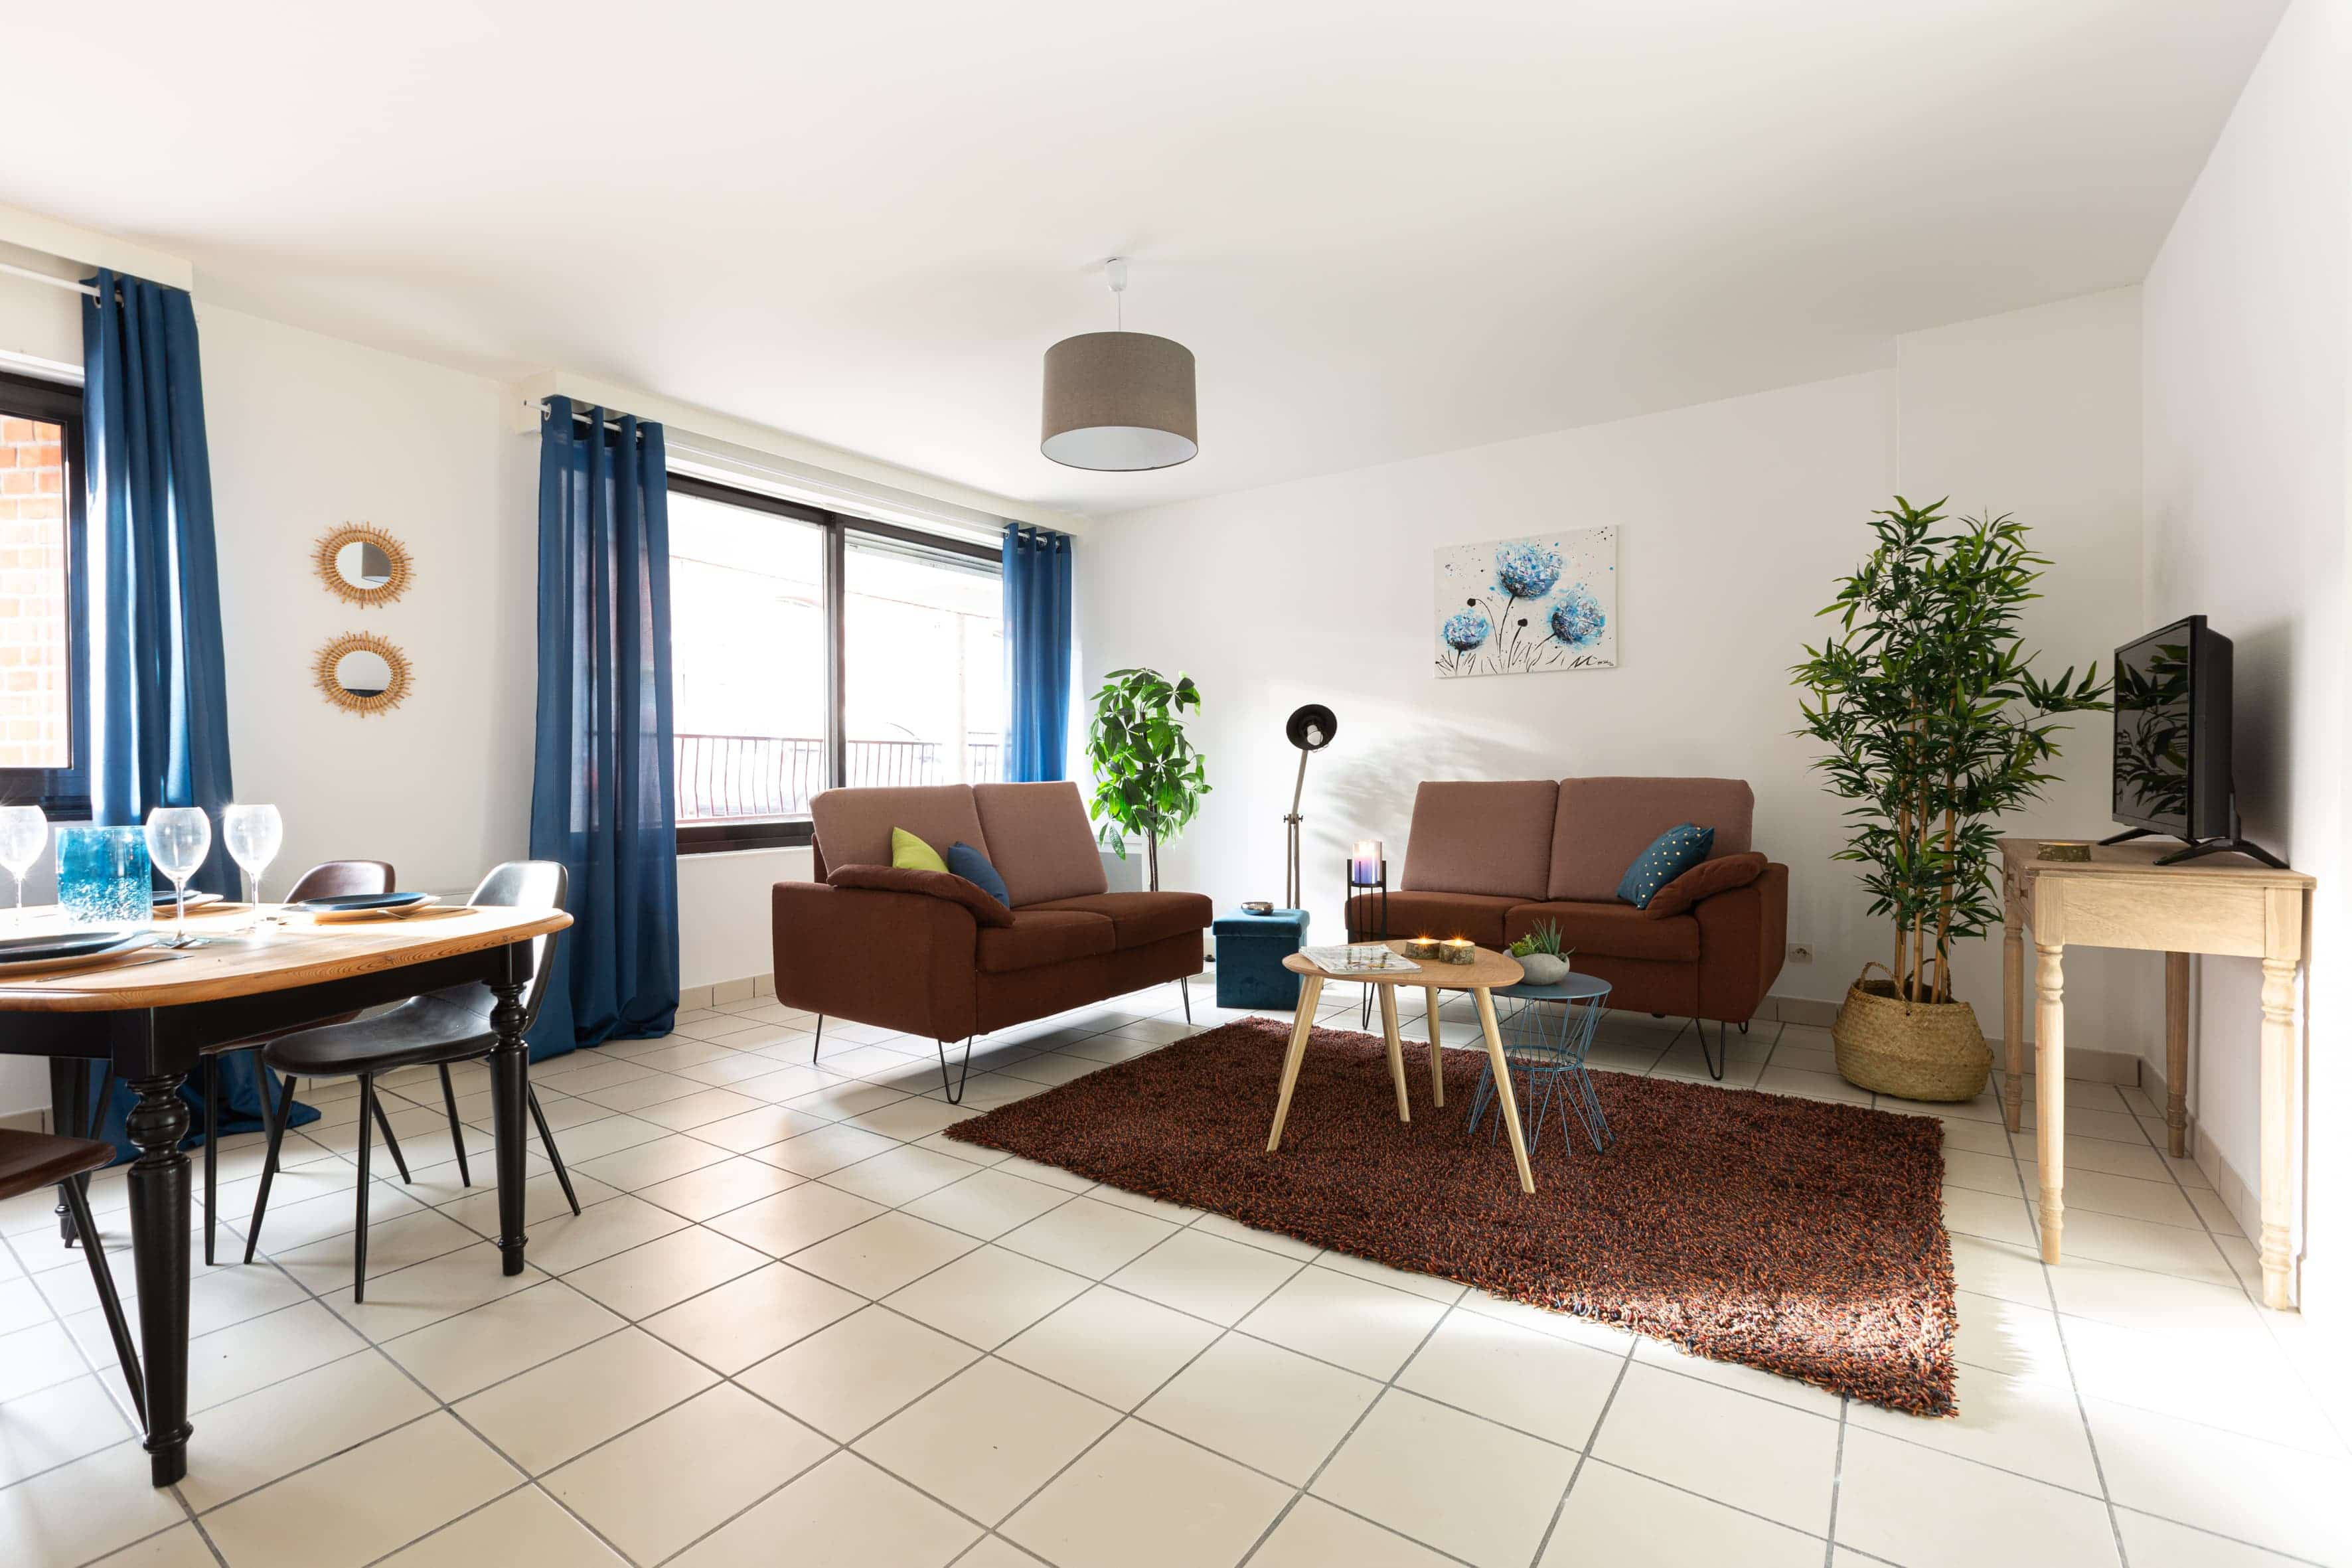 Location home Staging appartement duplex